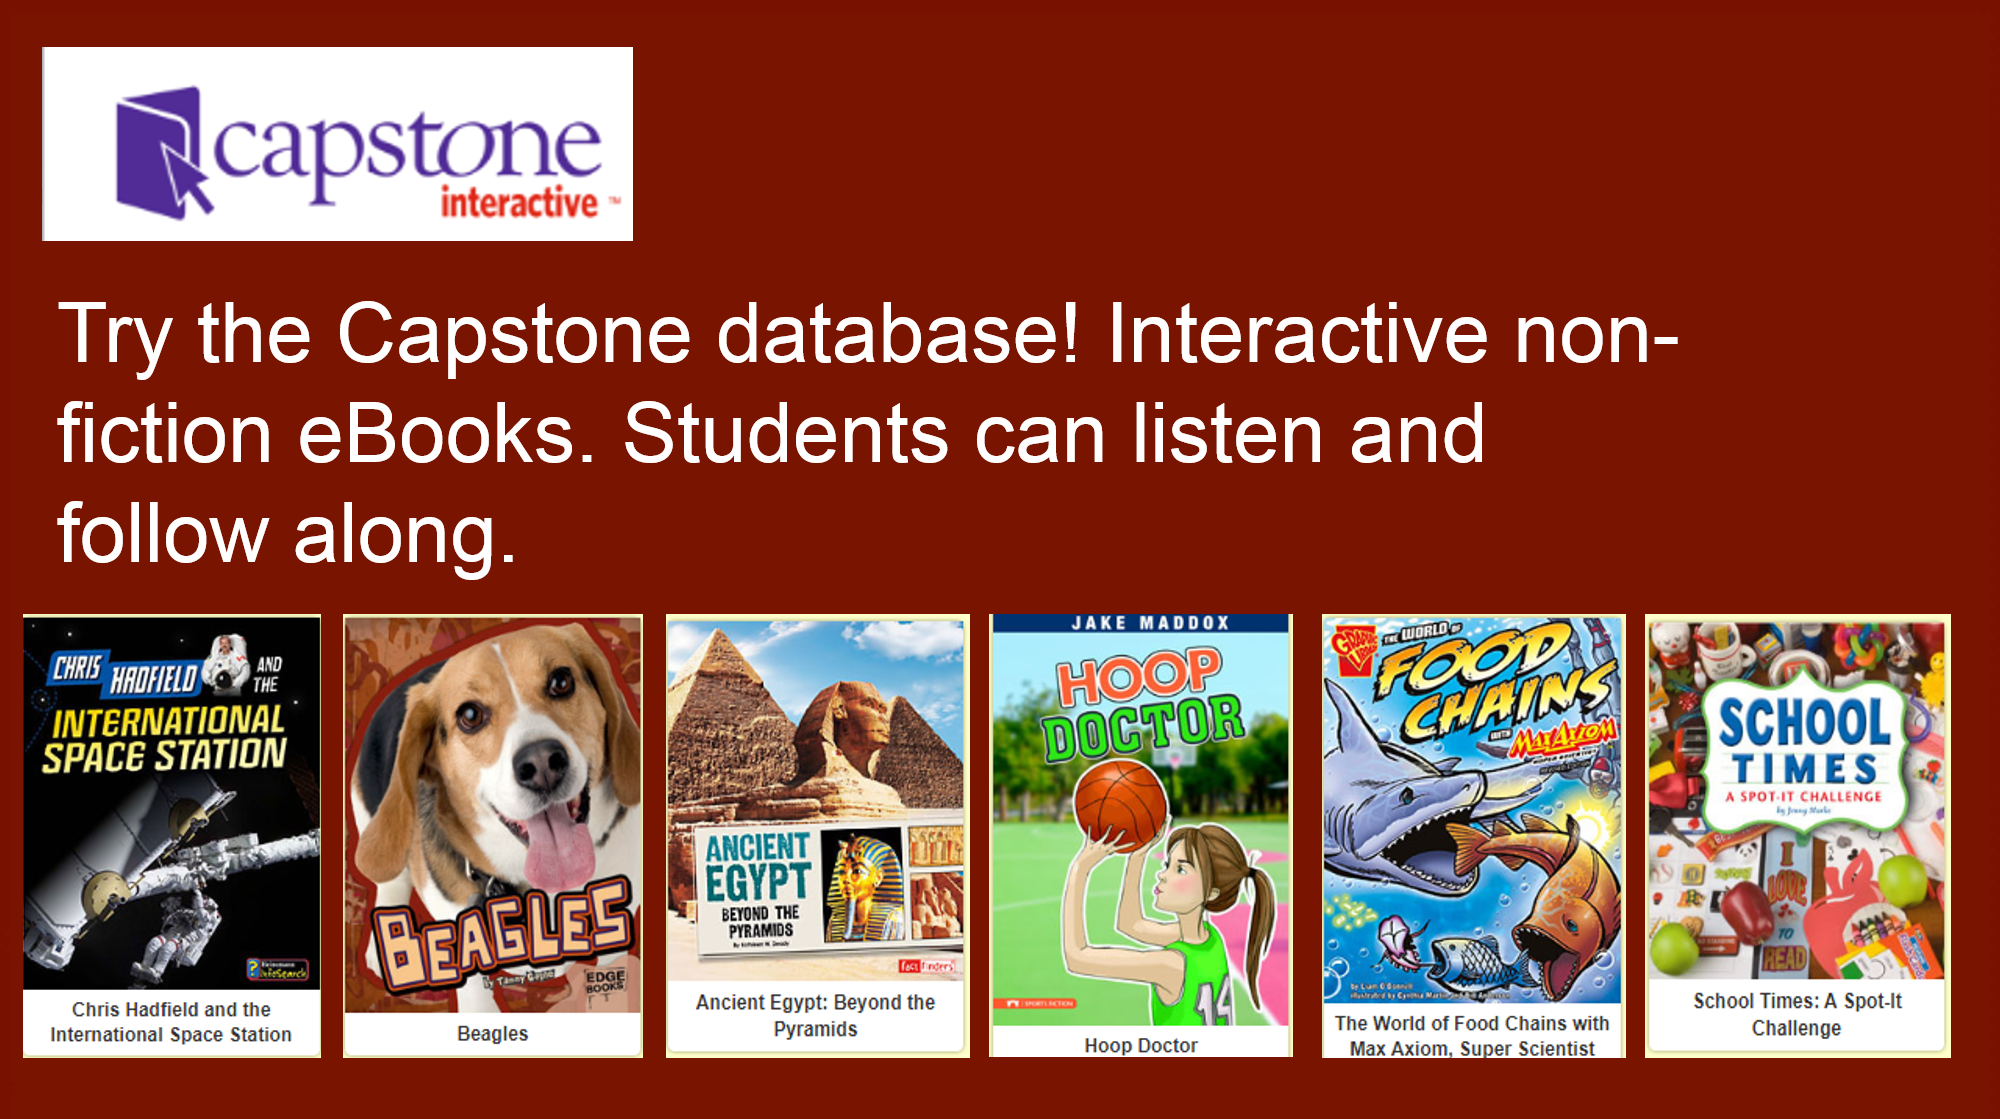 Try the Capstone database! Interactive non-fiction eBooks. Students can listen and follow along.